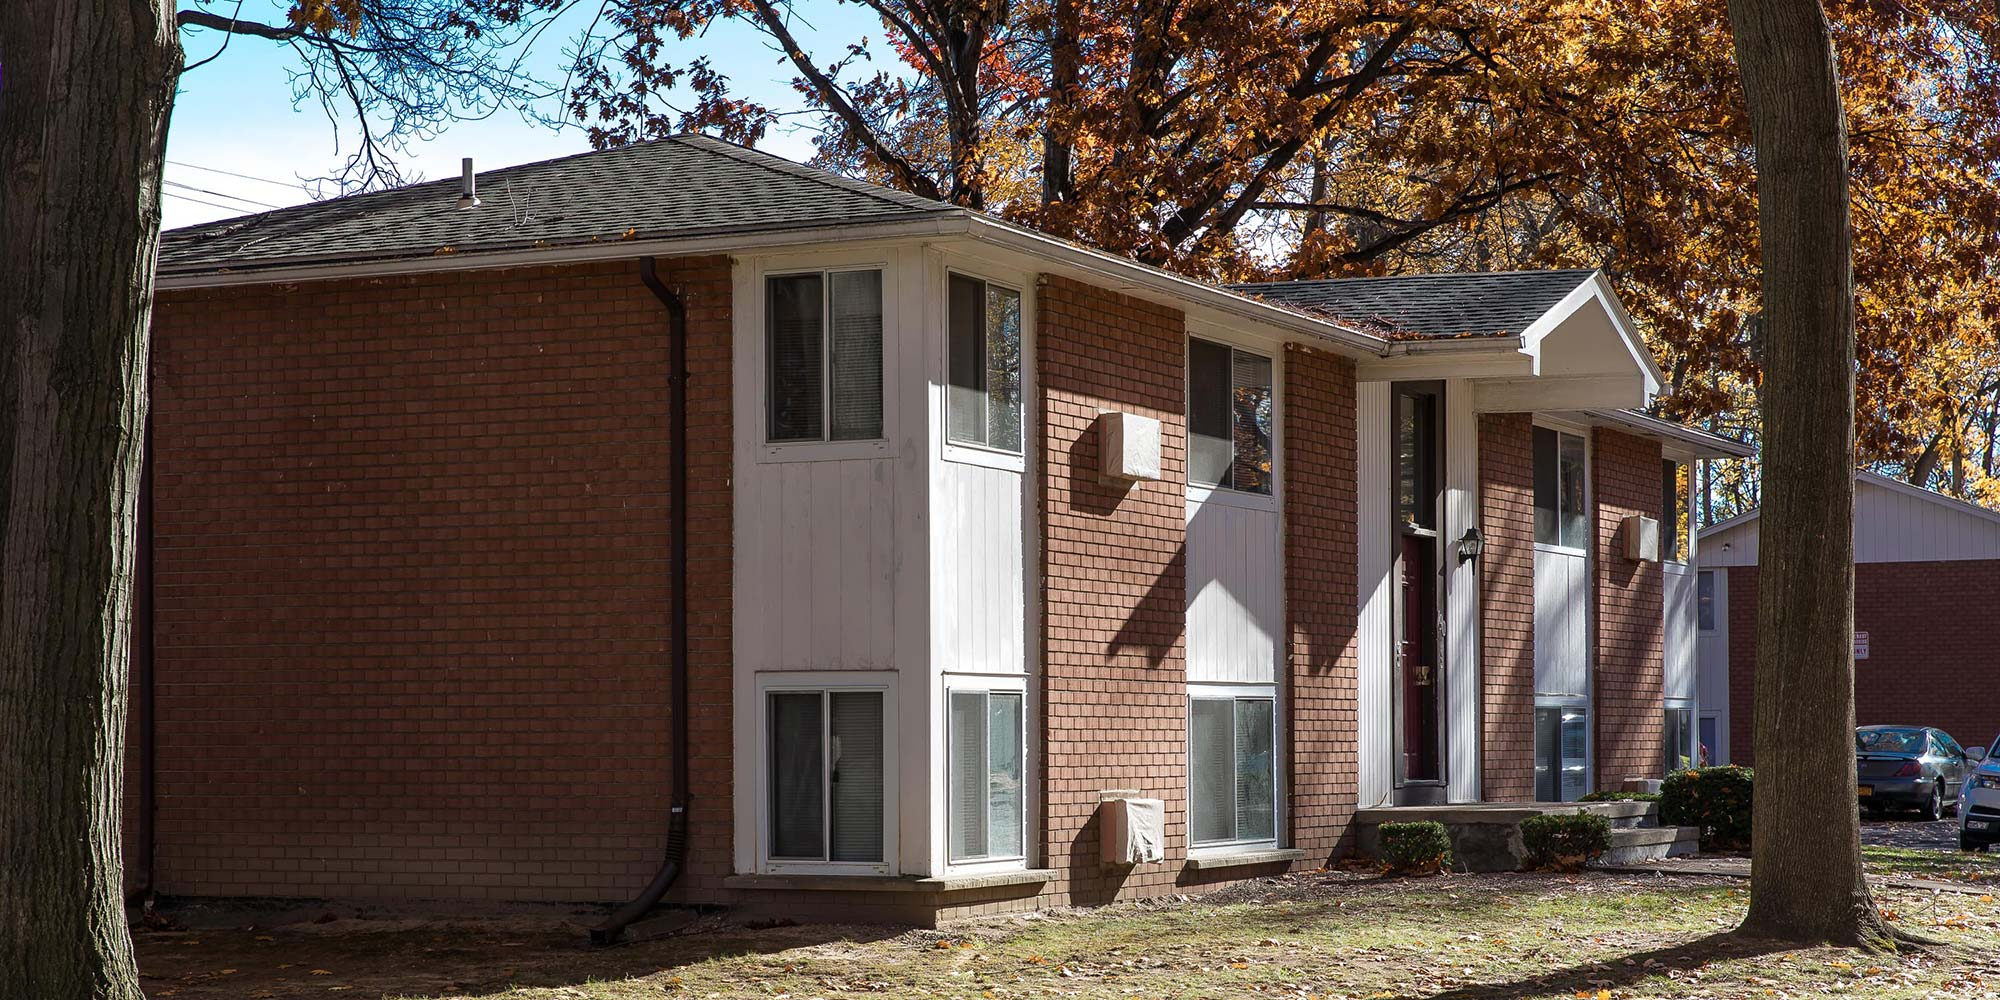 Glenora Gardens Apartments features and amenities